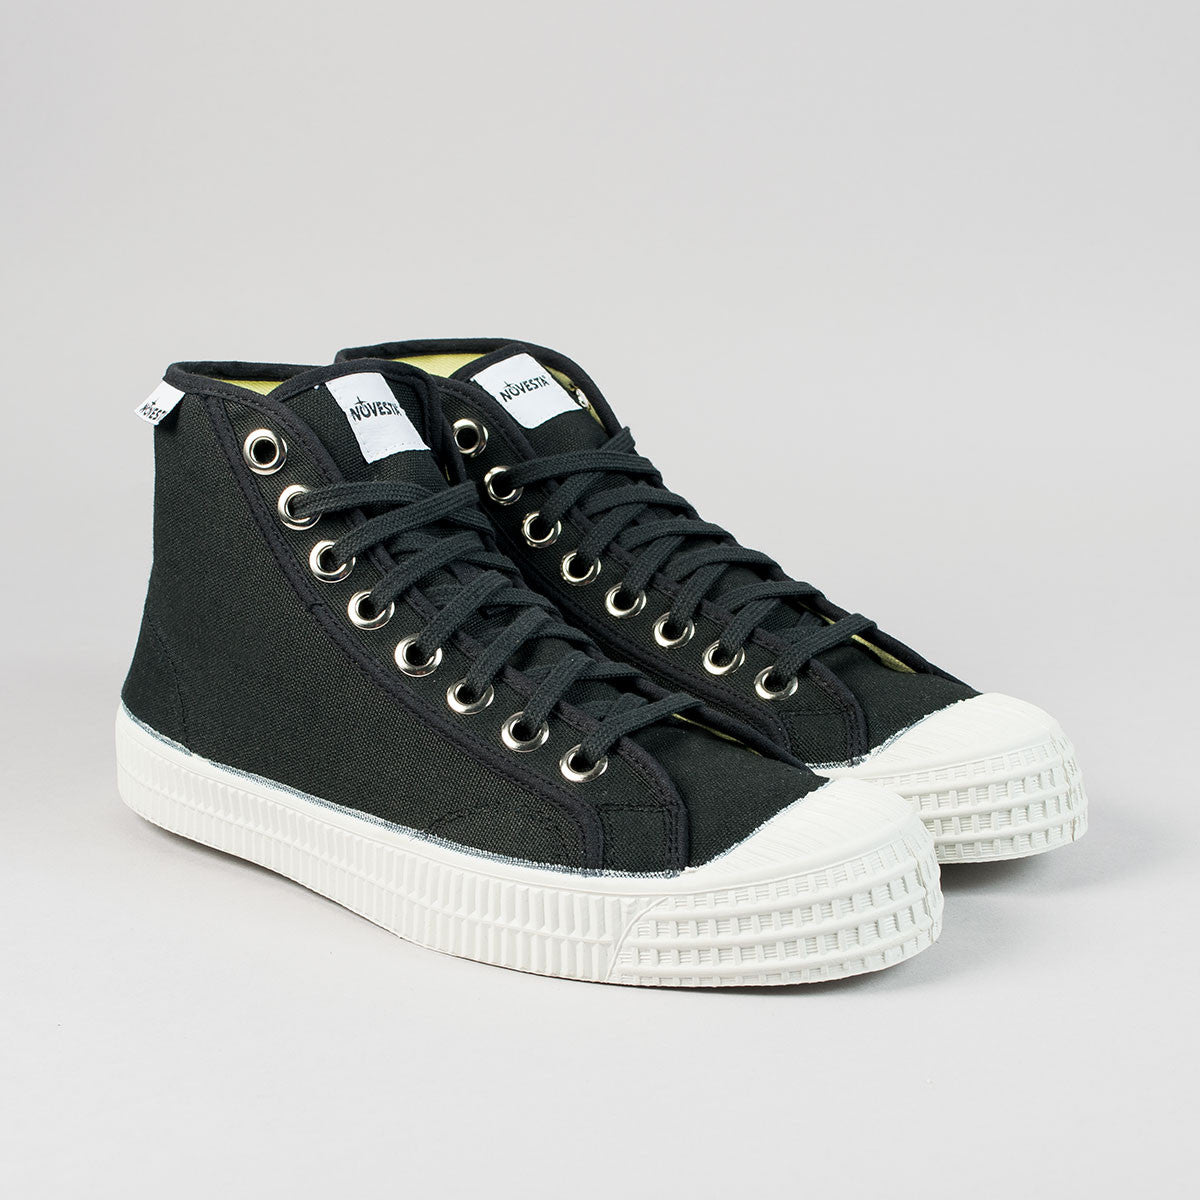 Novesta Star Dribble - Black - 2